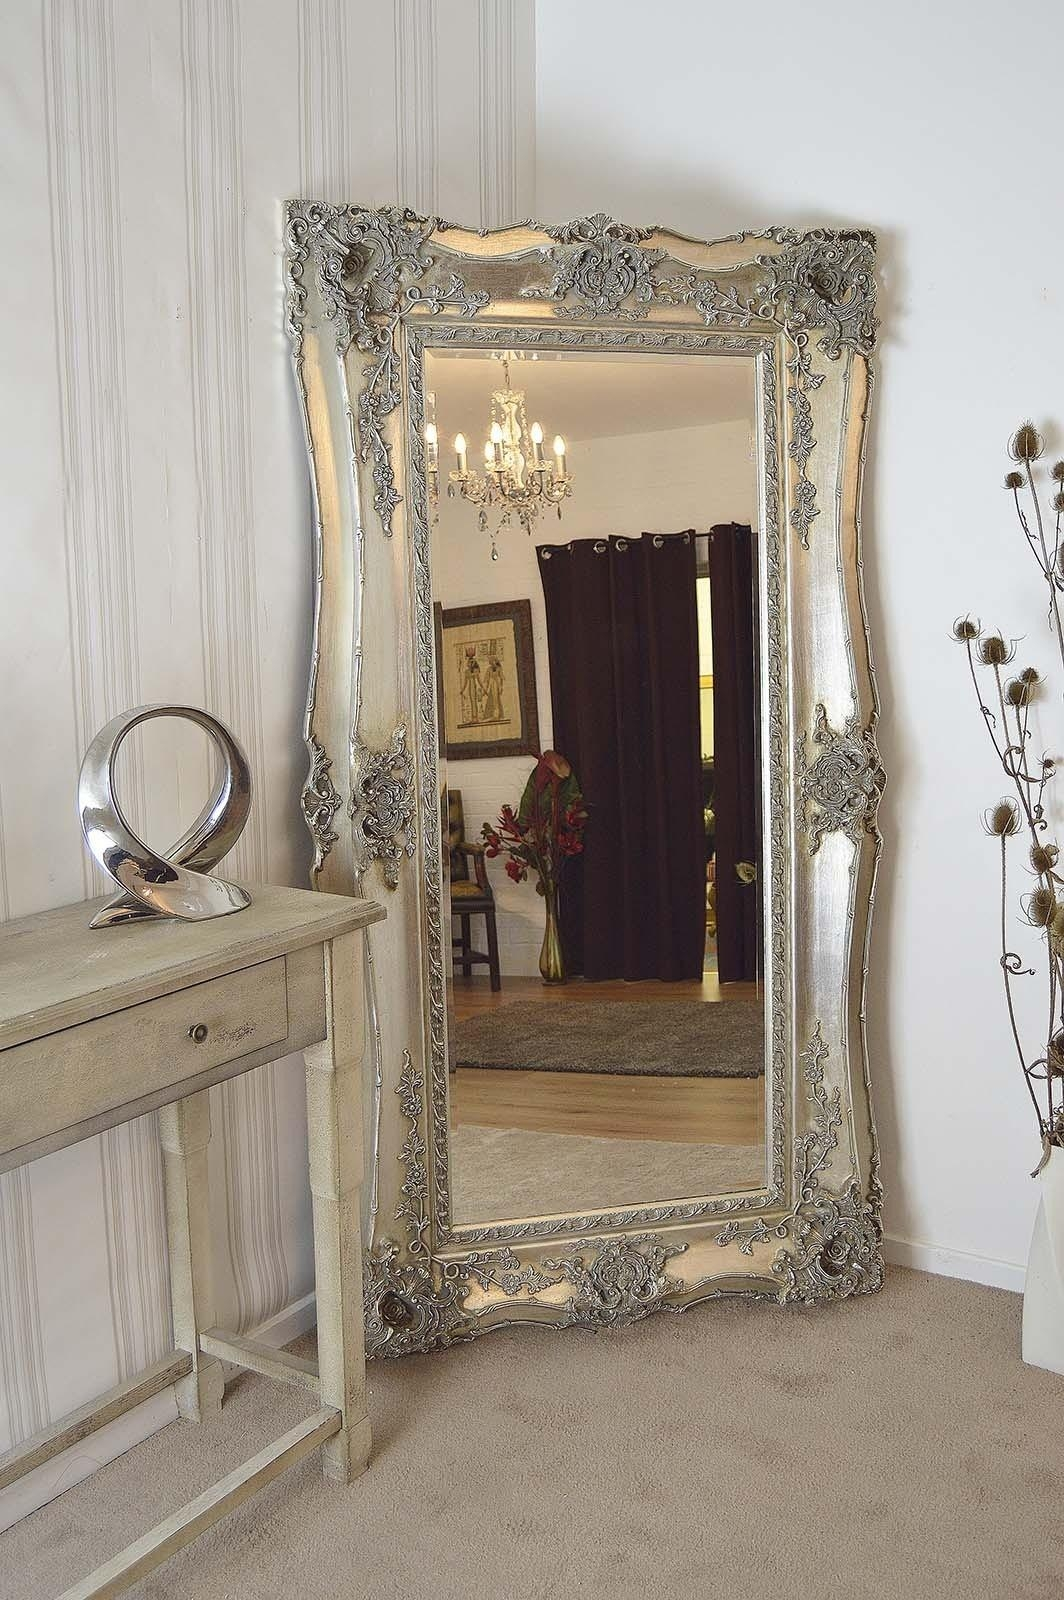 Classic Impression On Antique Wall Mirrors | Vwho Inside Oversized Antique Mirror (View 11 of 20)